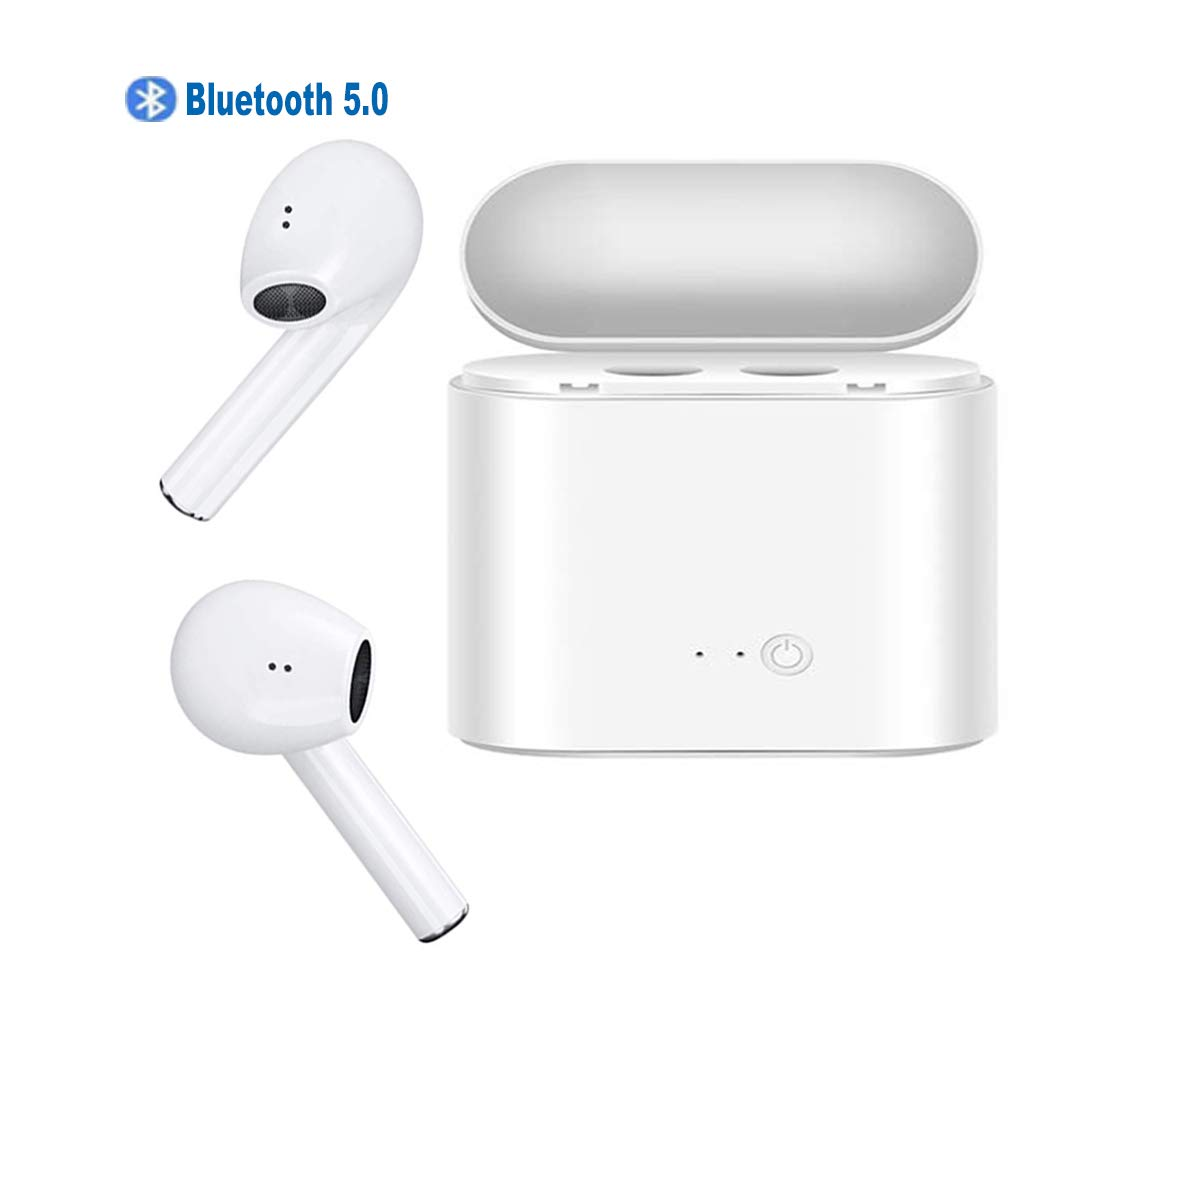 Upgraded Bluetooth 5.0 Bluetooth Headphones HiFi 3D Stereo Sound with Charging Case